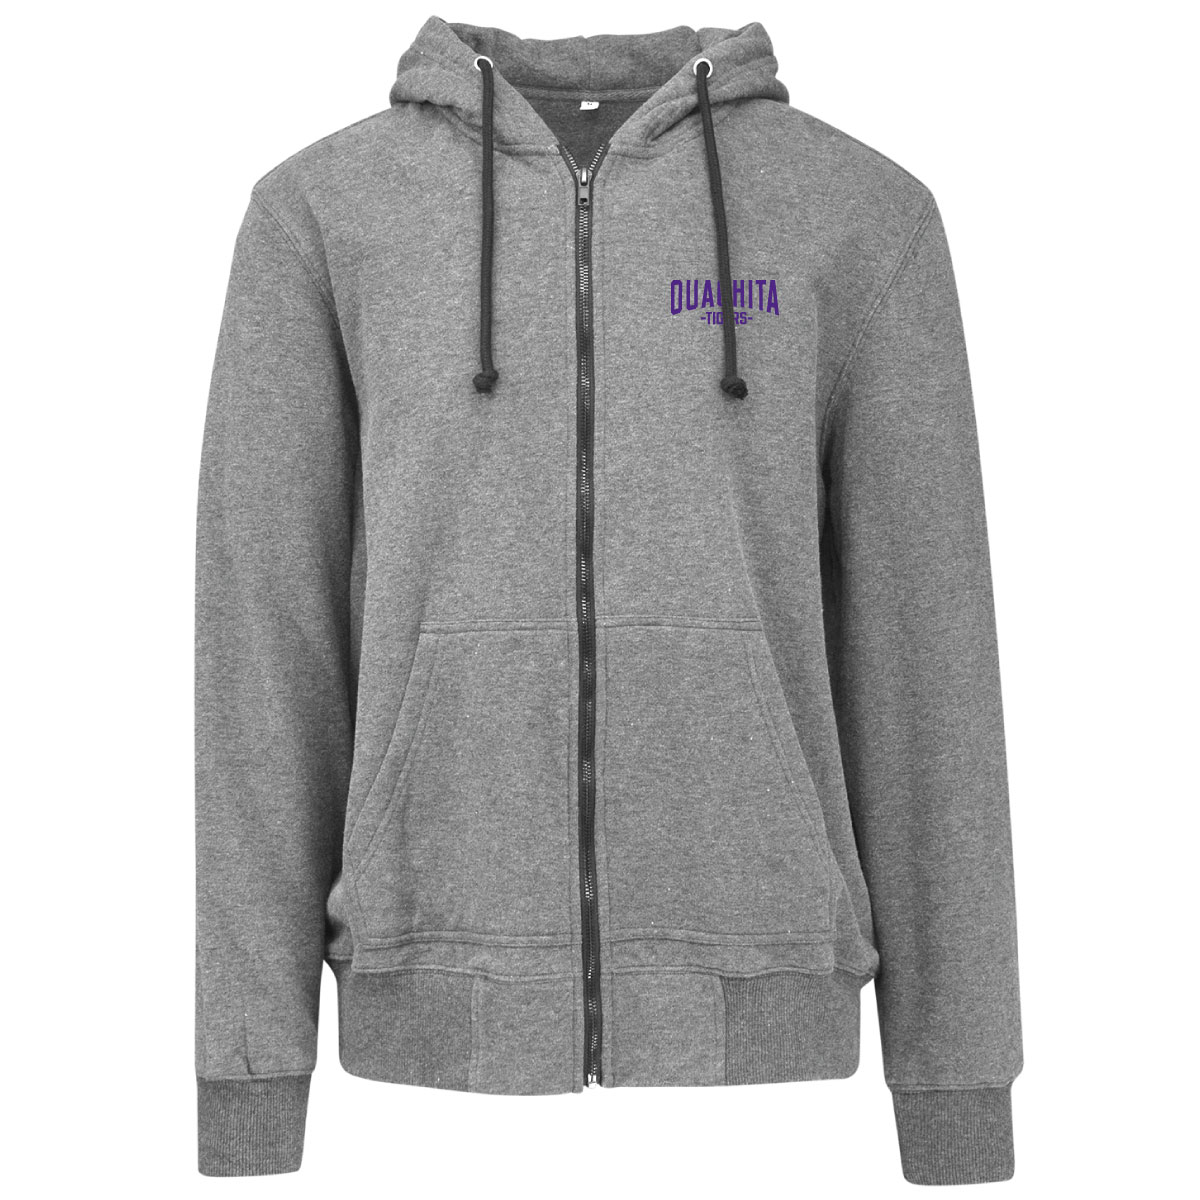 OUACHITA TIGERS FULL ZIP JACKET